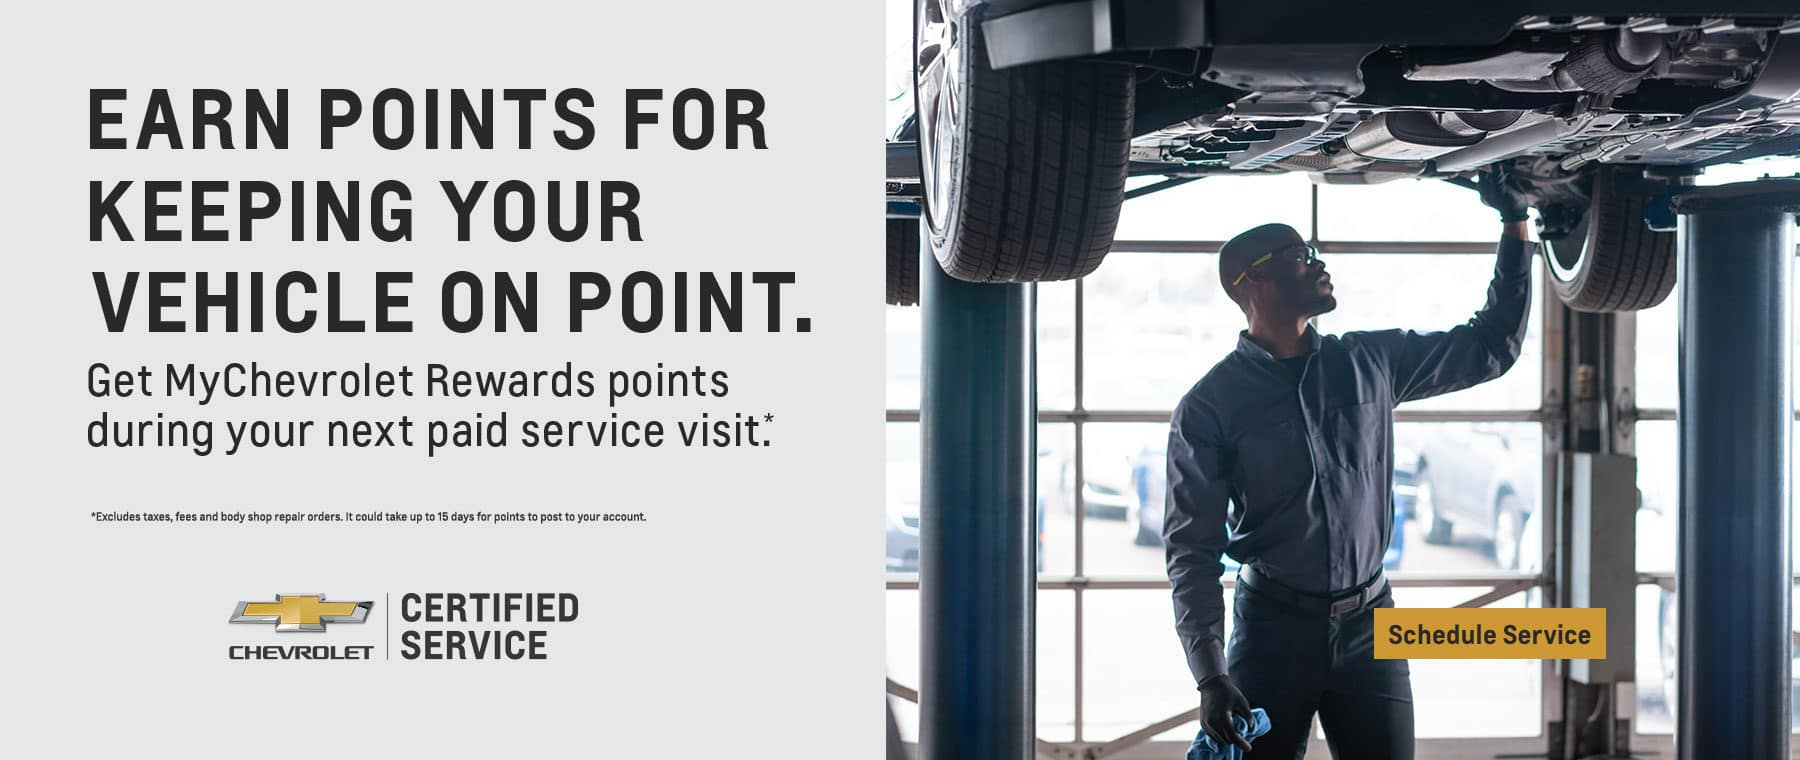 Earn points for keeping your vehicle on point